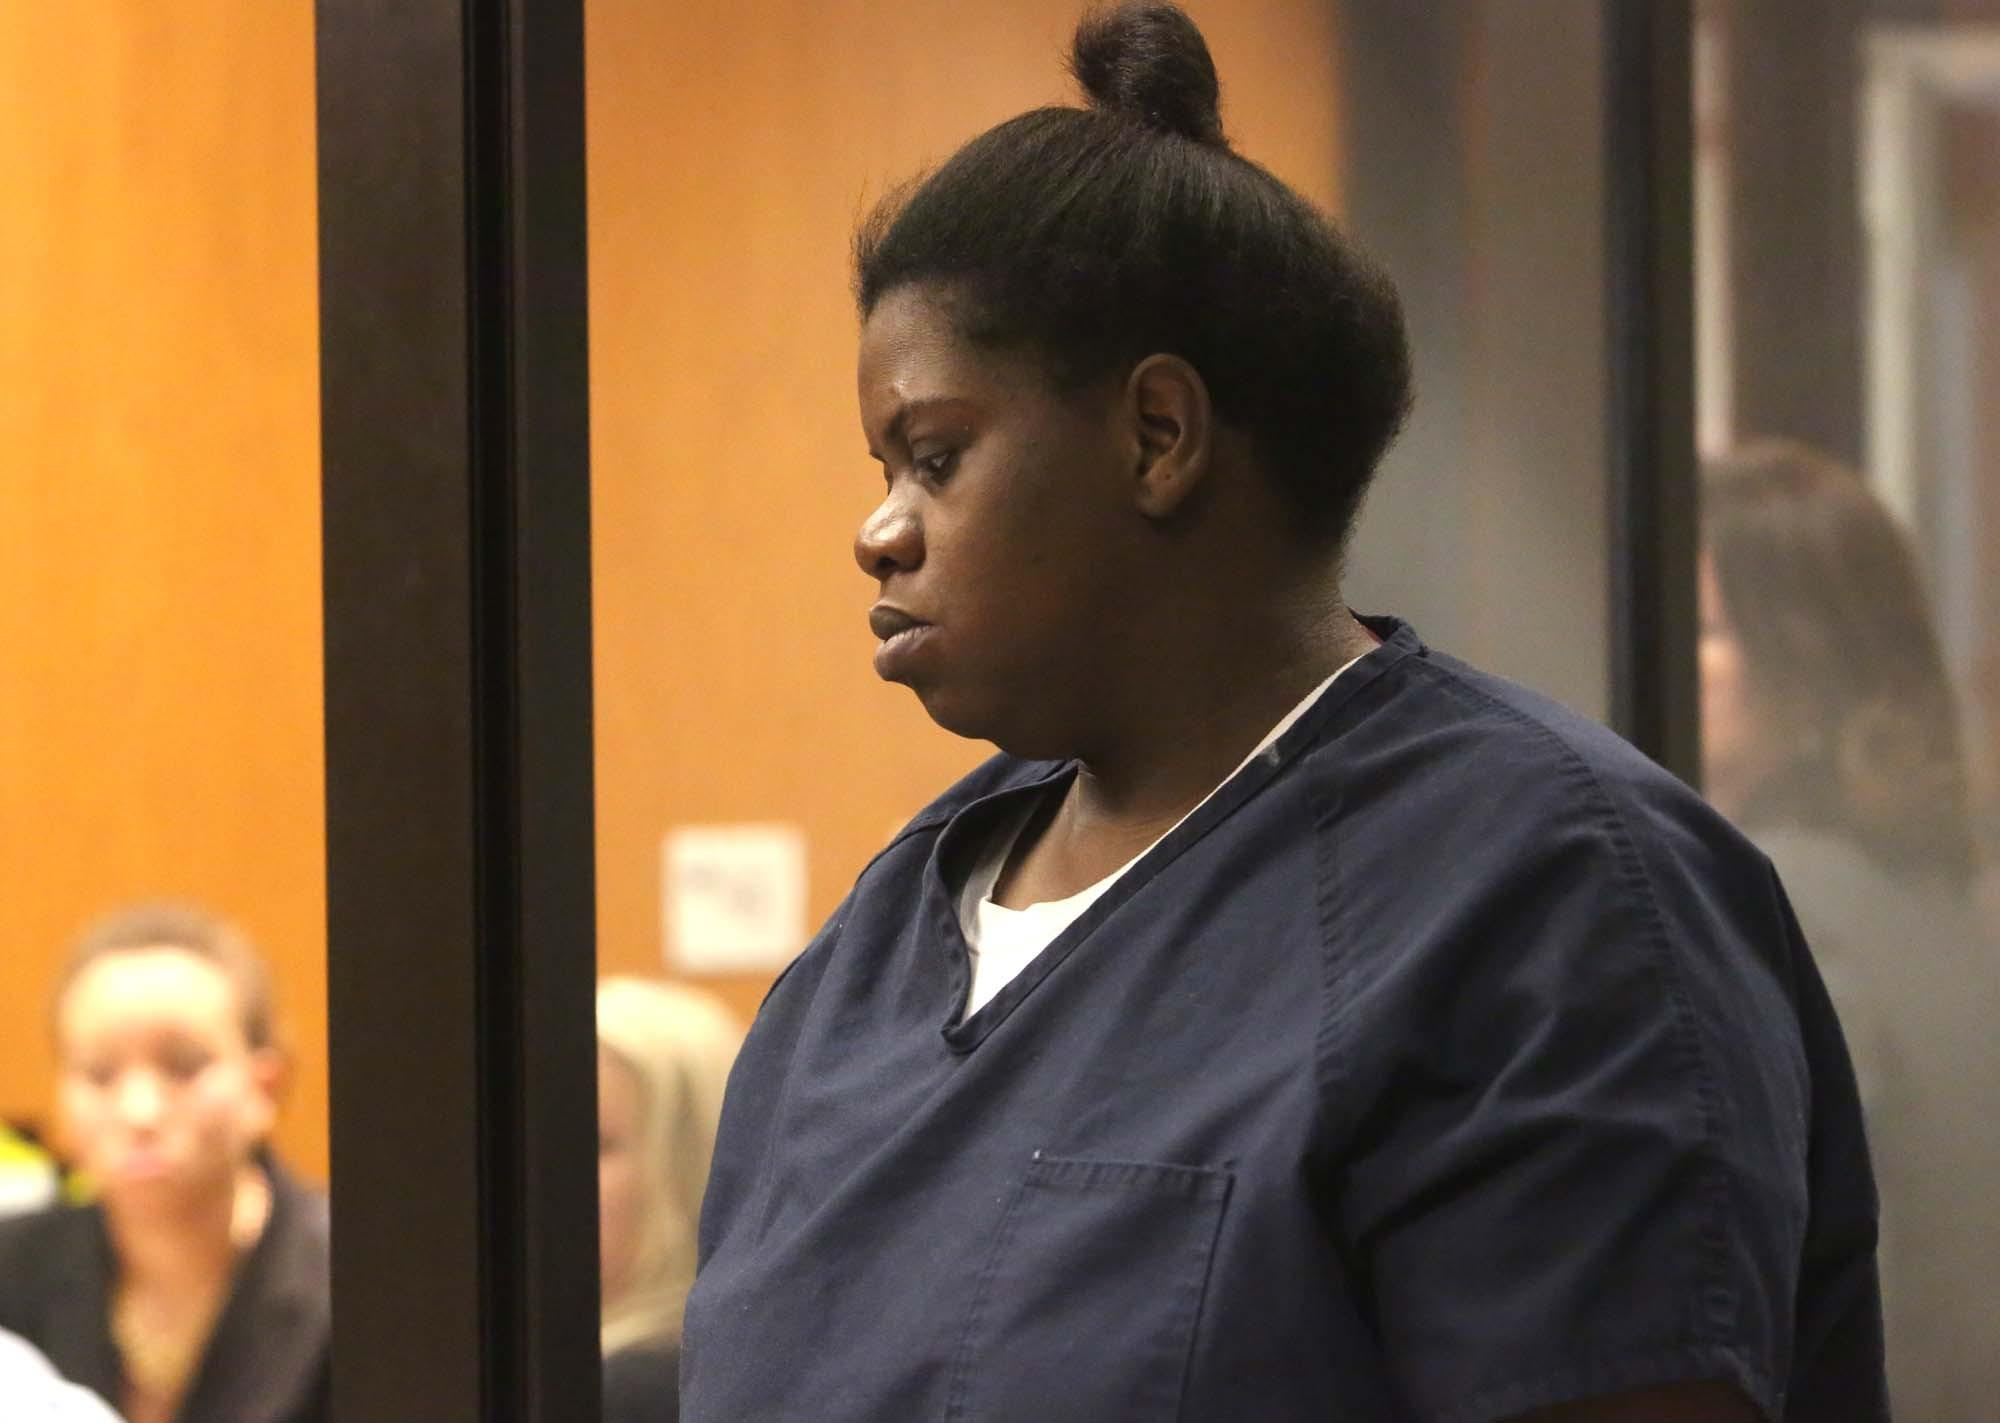 Rachel Fryer, 32, made a court appearance from the jail Thursday to face the new charges: felony murder, aggravated child abuse, evidence tampering and mishandling human remains.